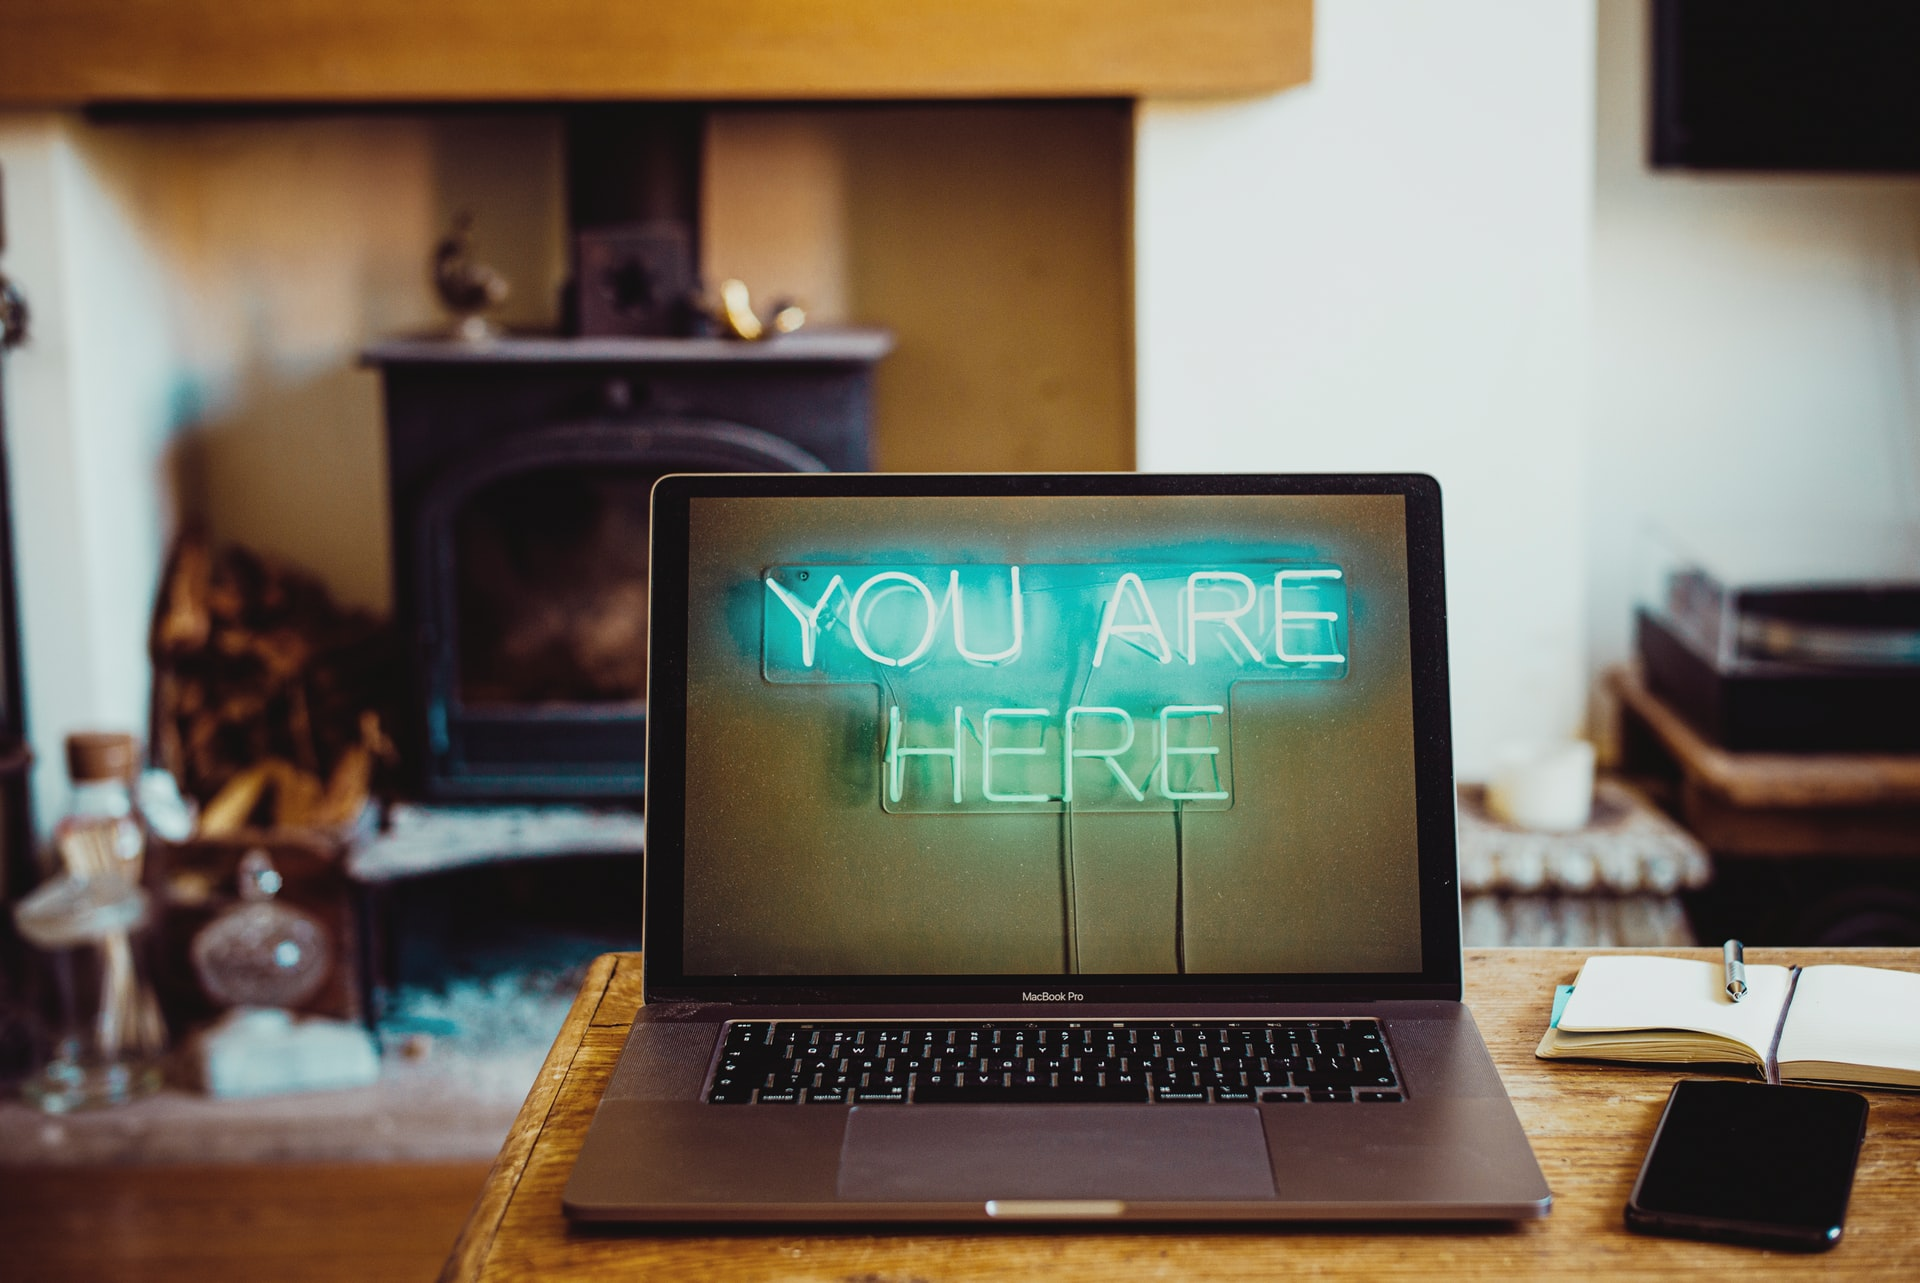 This image shows a laptop on a desk with a busy work space reading 'you are here' on the screen with LED effects.